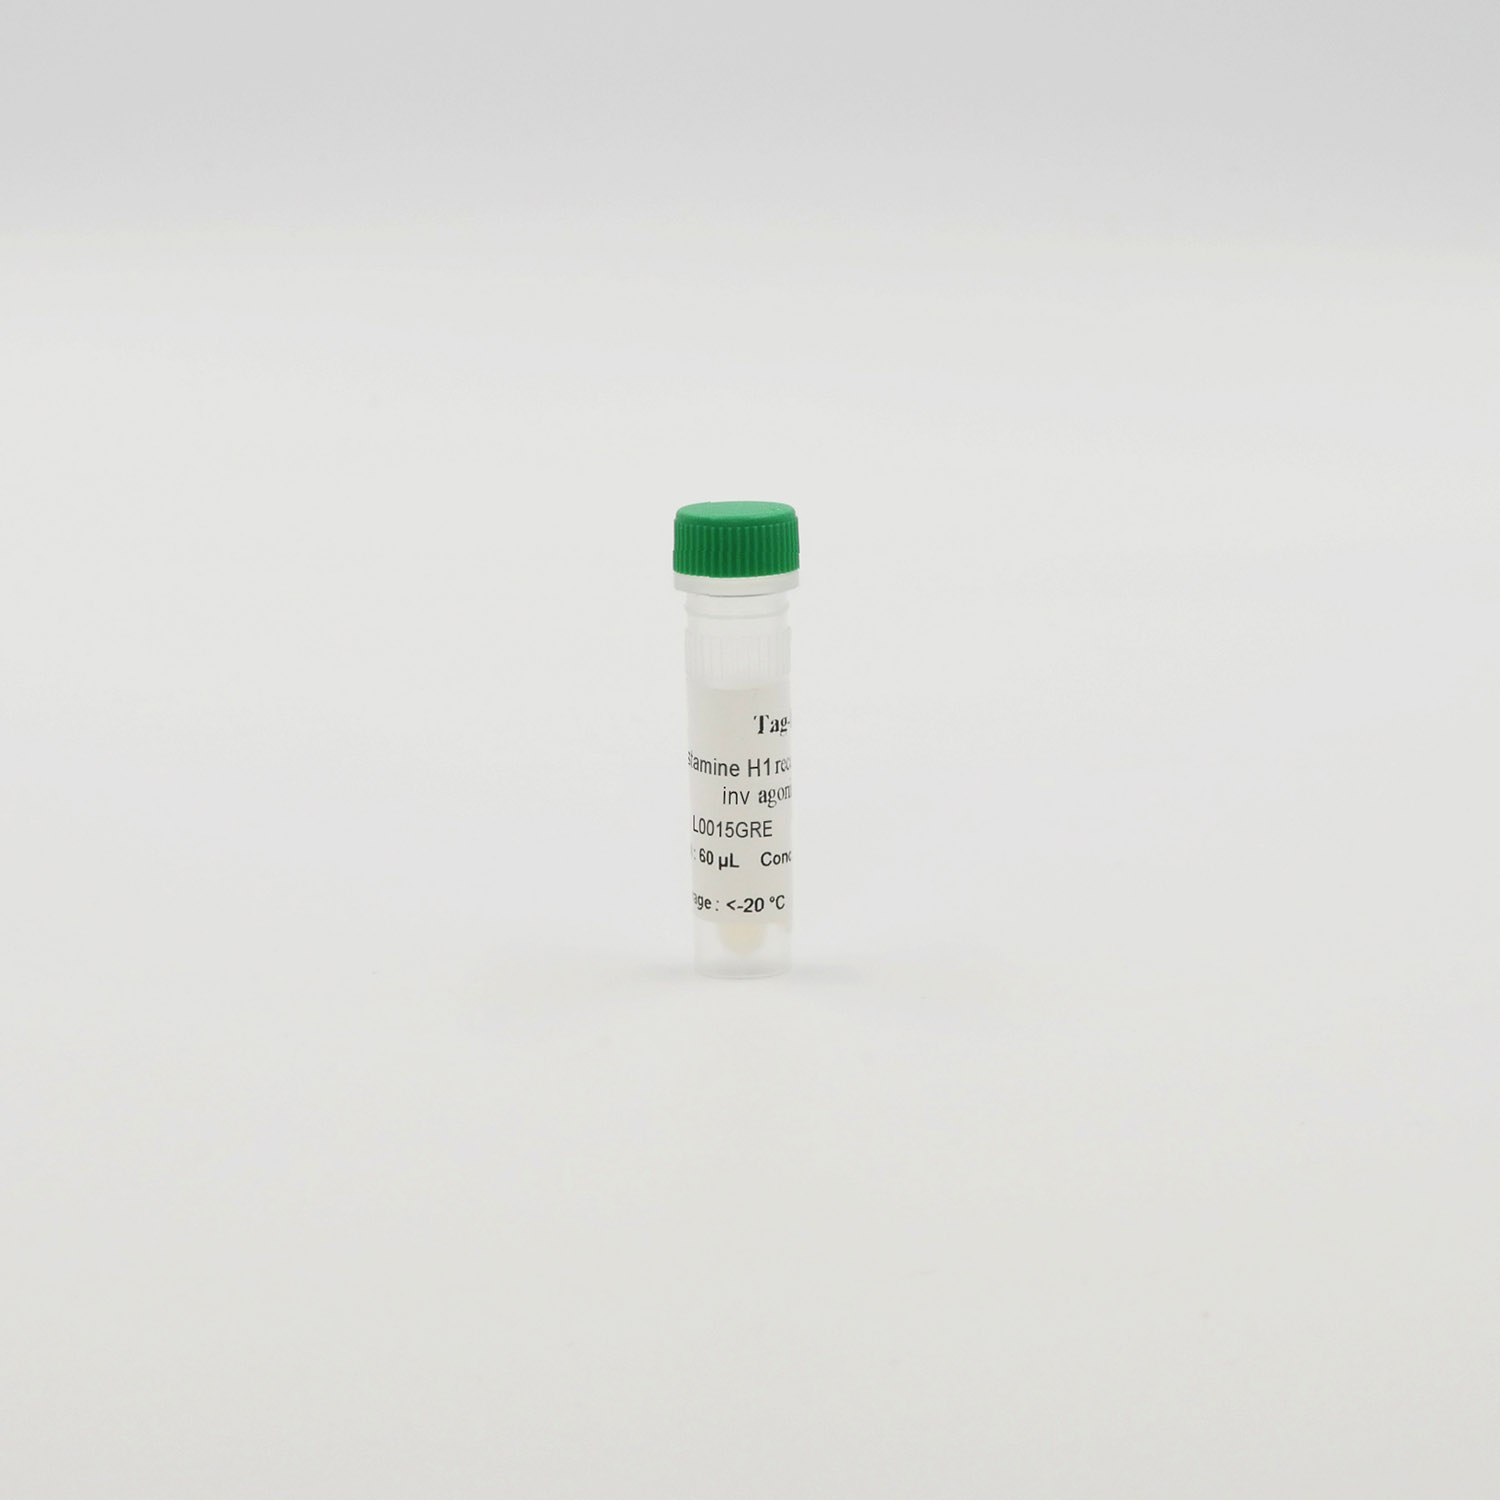 Photography of Histamine H1 receptor green inv ago vial